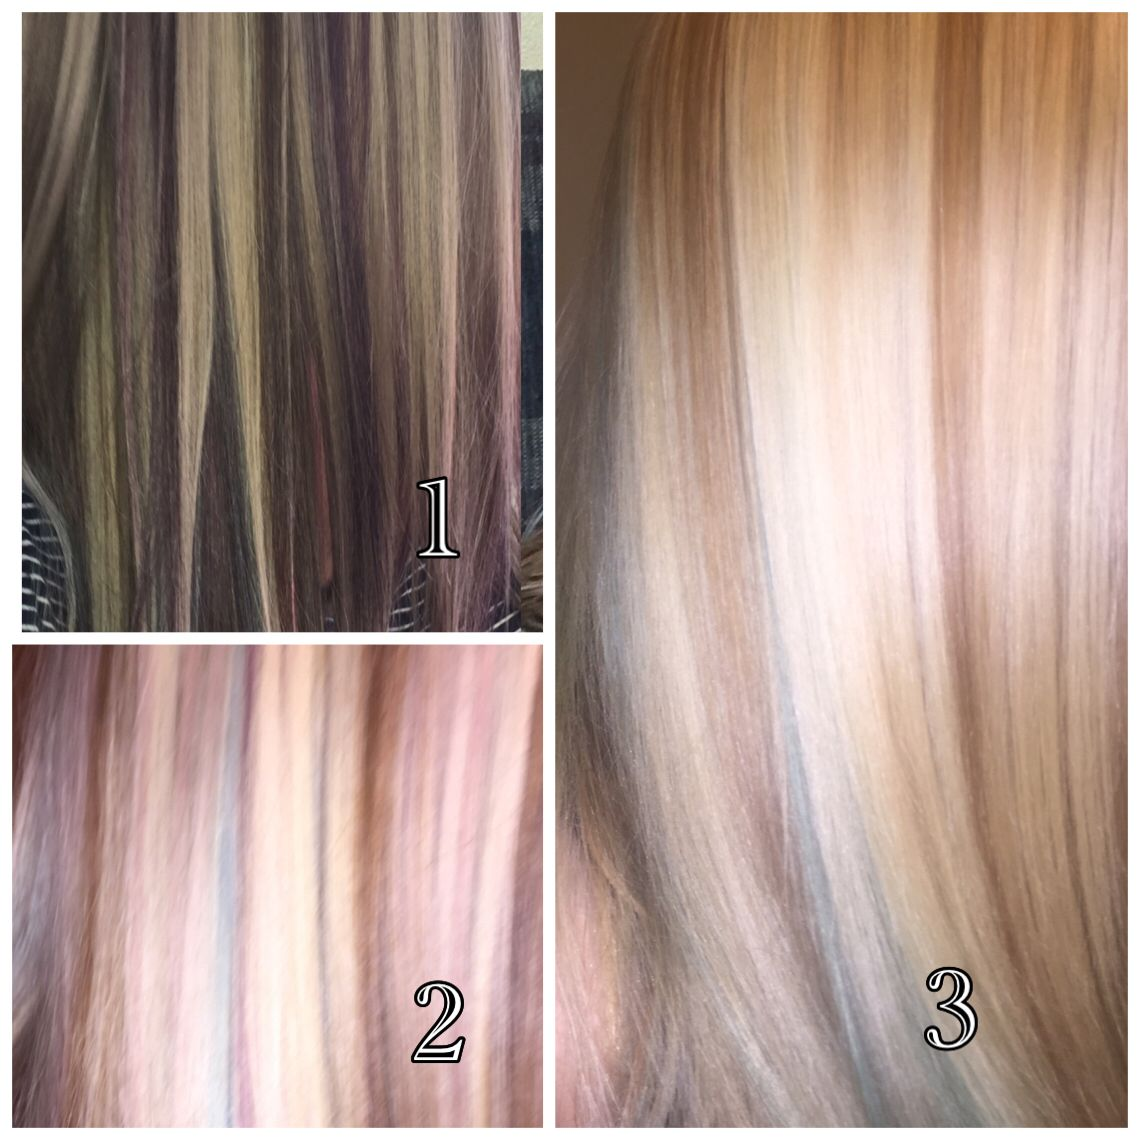 Lighten Hair Color In Three Weeks Using Clarifying Shampoo And Crushed Vitamin C Pills Mixed And Let Set O How To Lighten Hair Thick Hair Styles Hair Vitamins